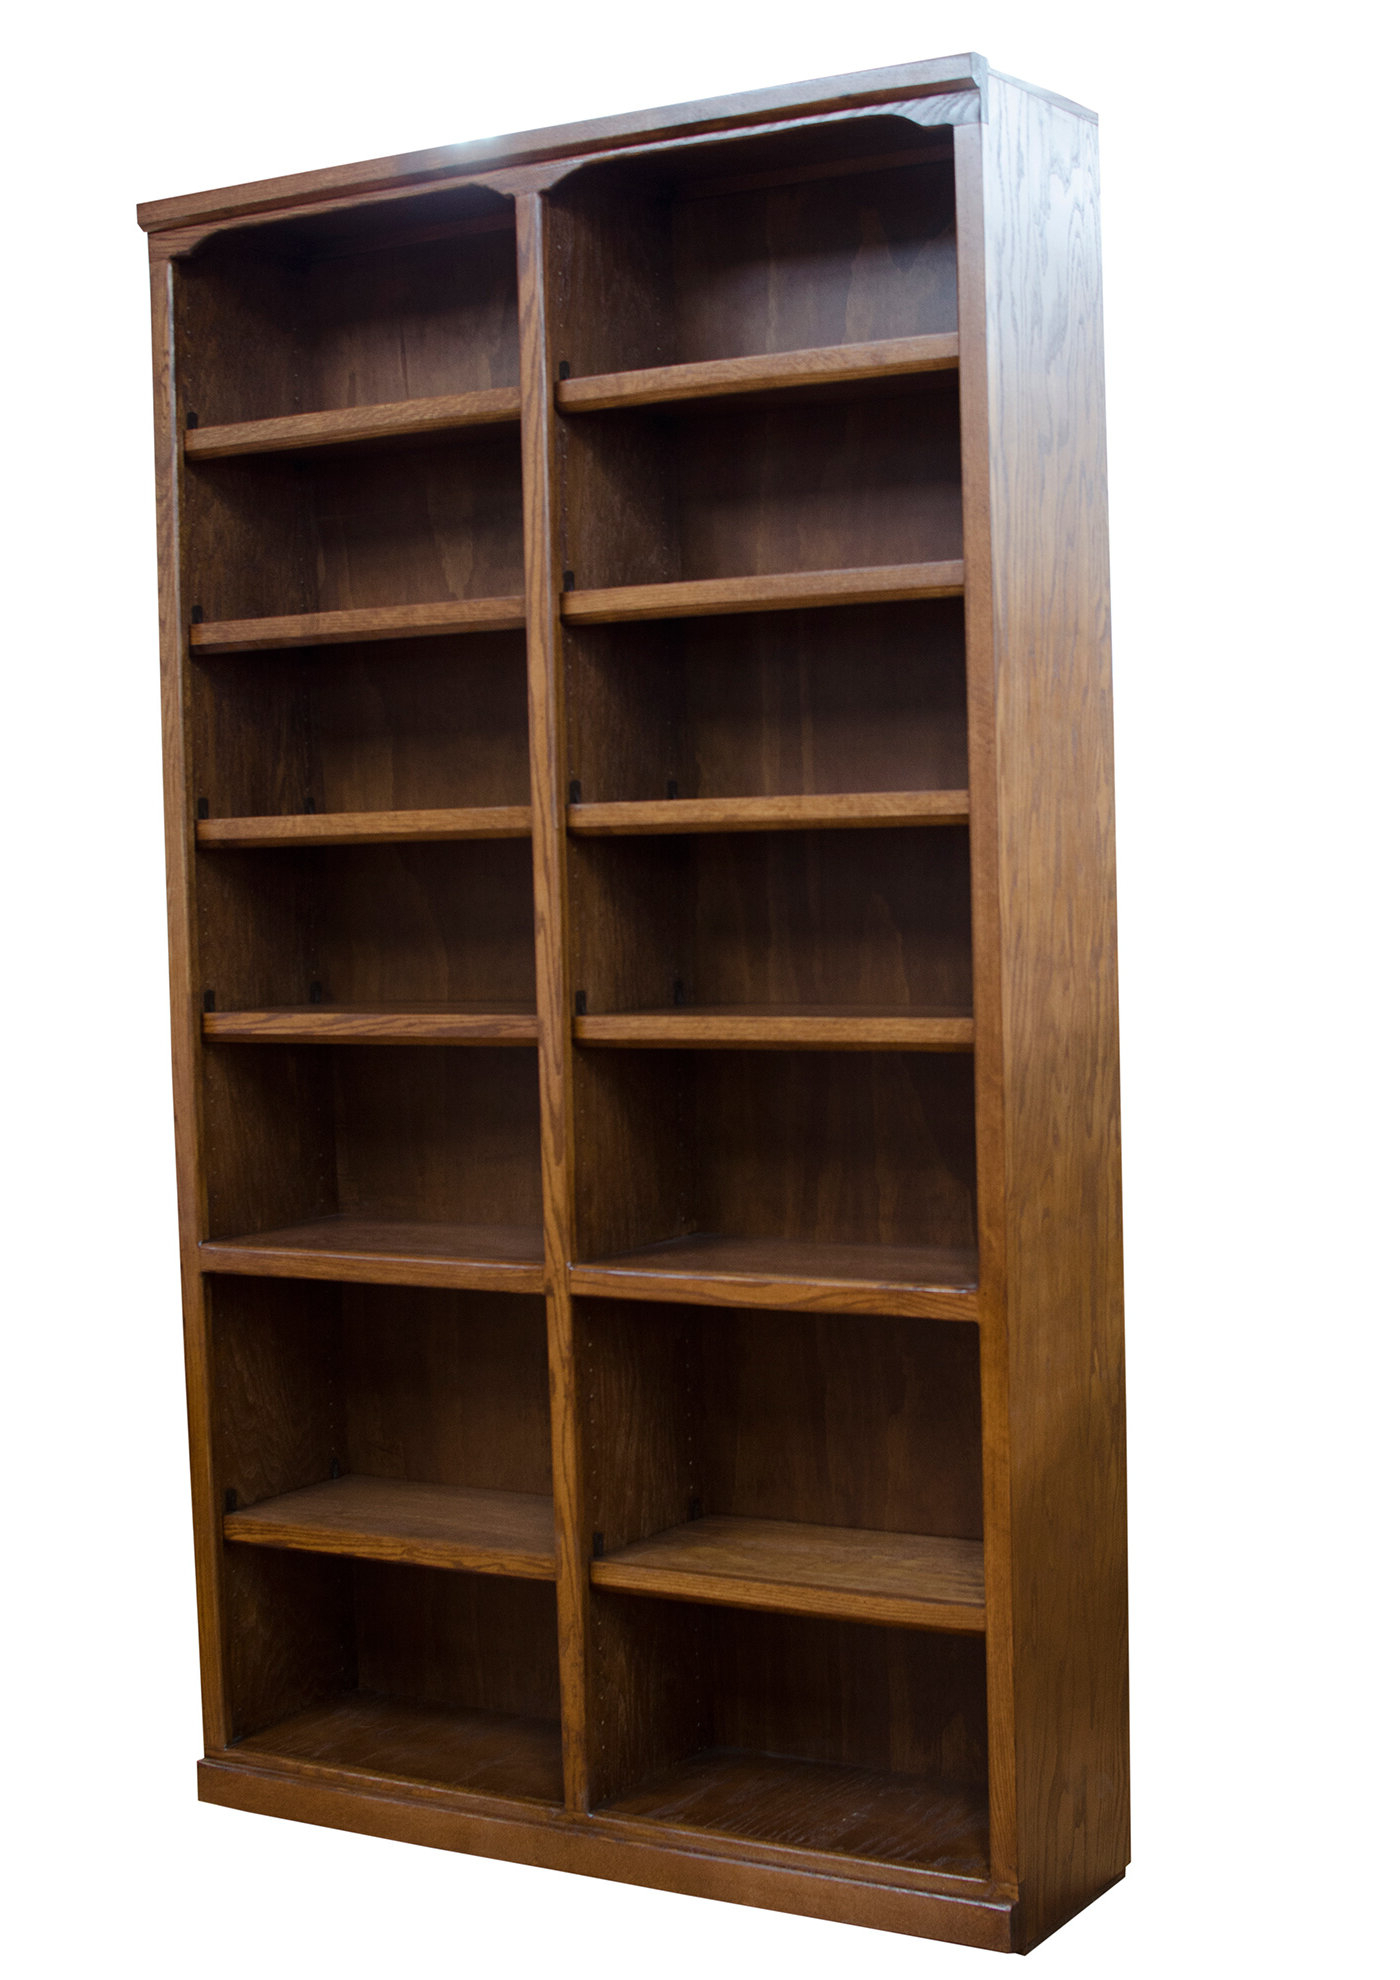 Reynoldsville Standard Bookcases Inside 2020 Mersey Traditional Standard Bookcase (View 15 of 20)